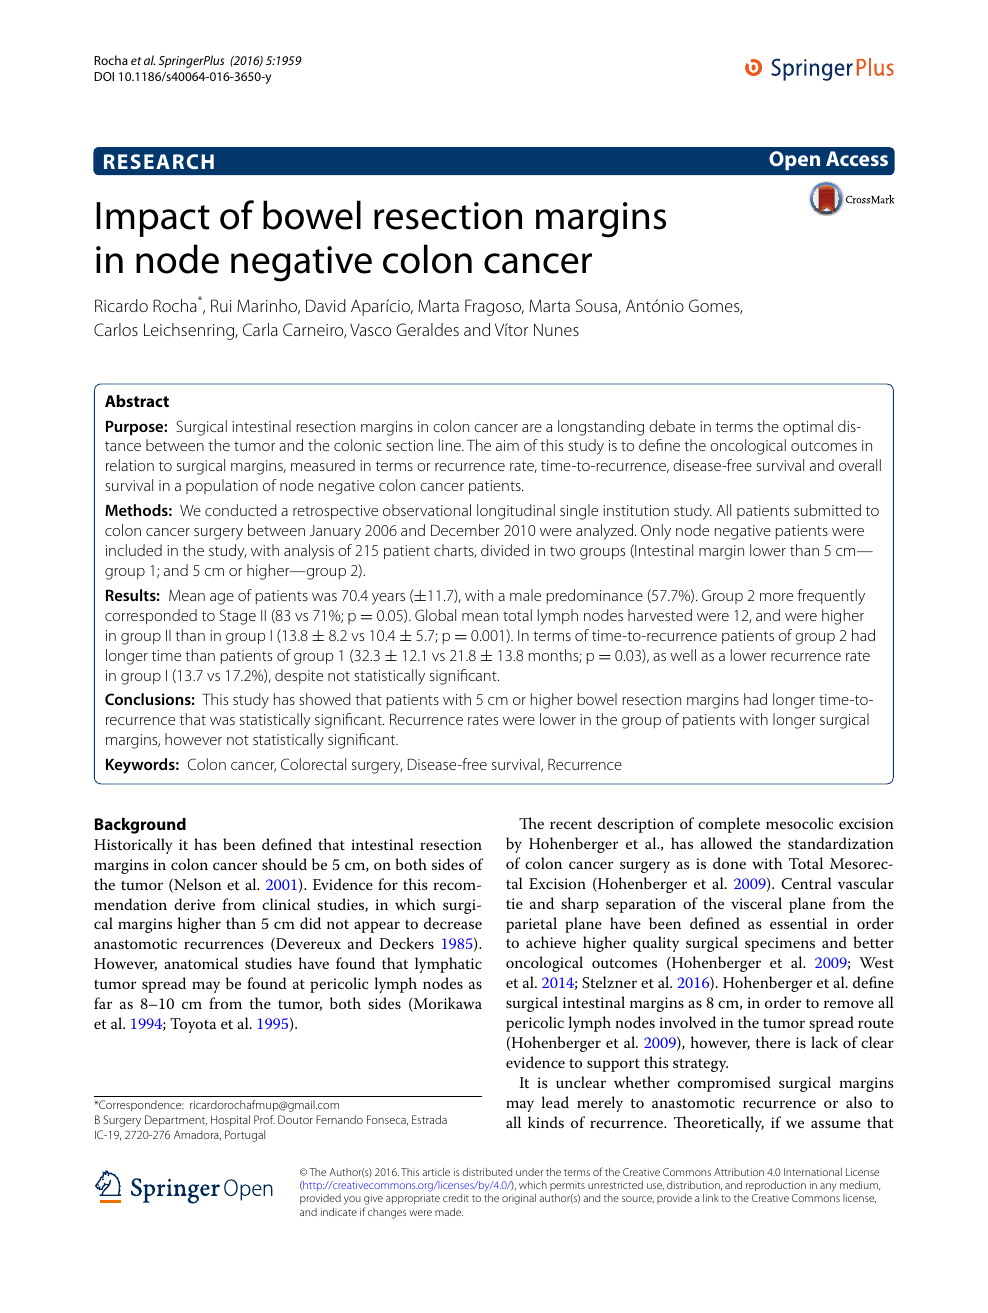 Impact Of Bowel Resection Margins In Node Negative Colon Cancer Topic Of Research Paper In Clinical Medicine Download Scholarly Article Pdf And Read For Free On Cyberleninka Open Science Hub